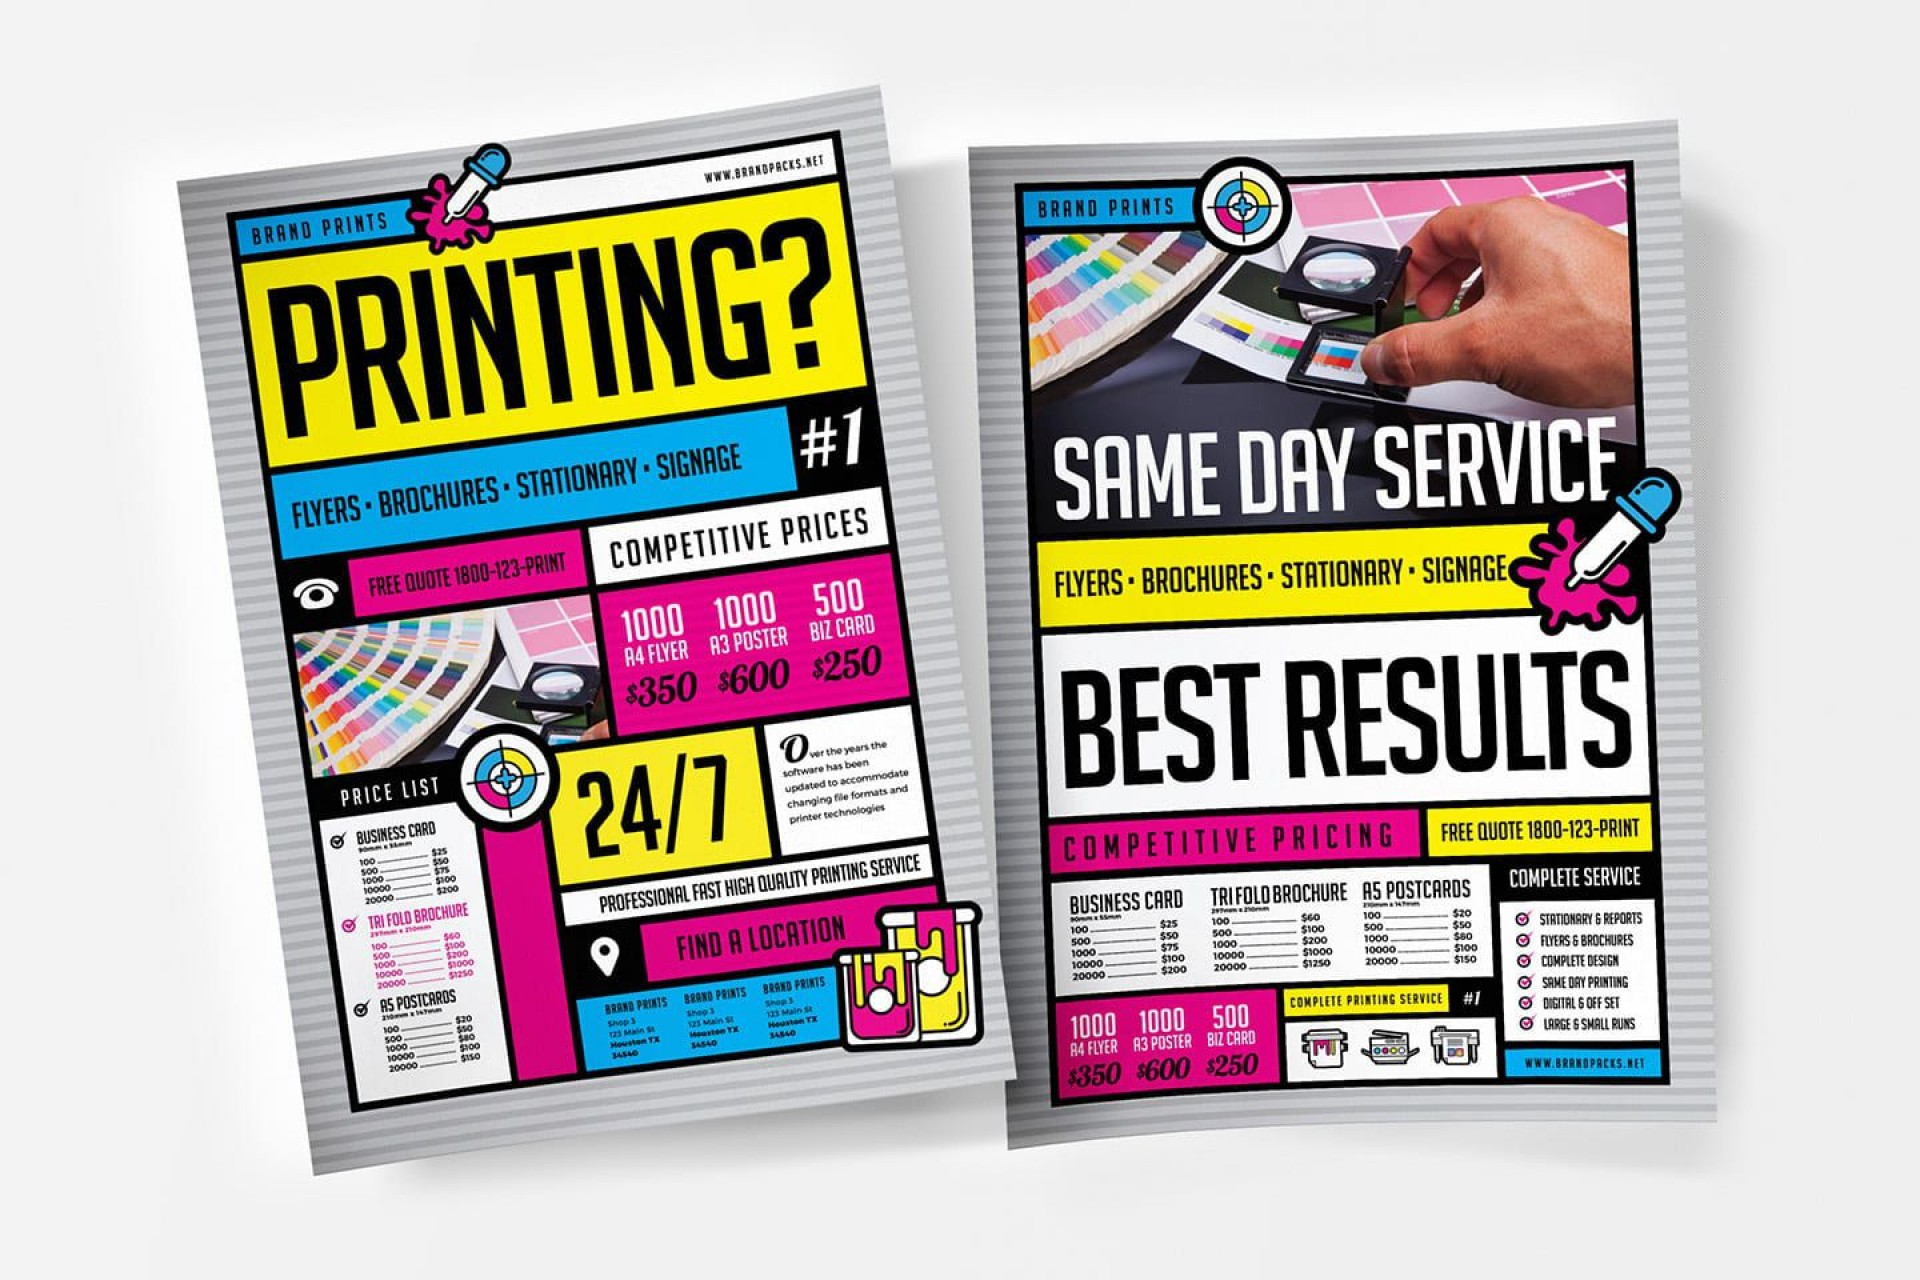 009 Exceptional Free Print Ad Template Concept  Templates Real Estate For Word1920